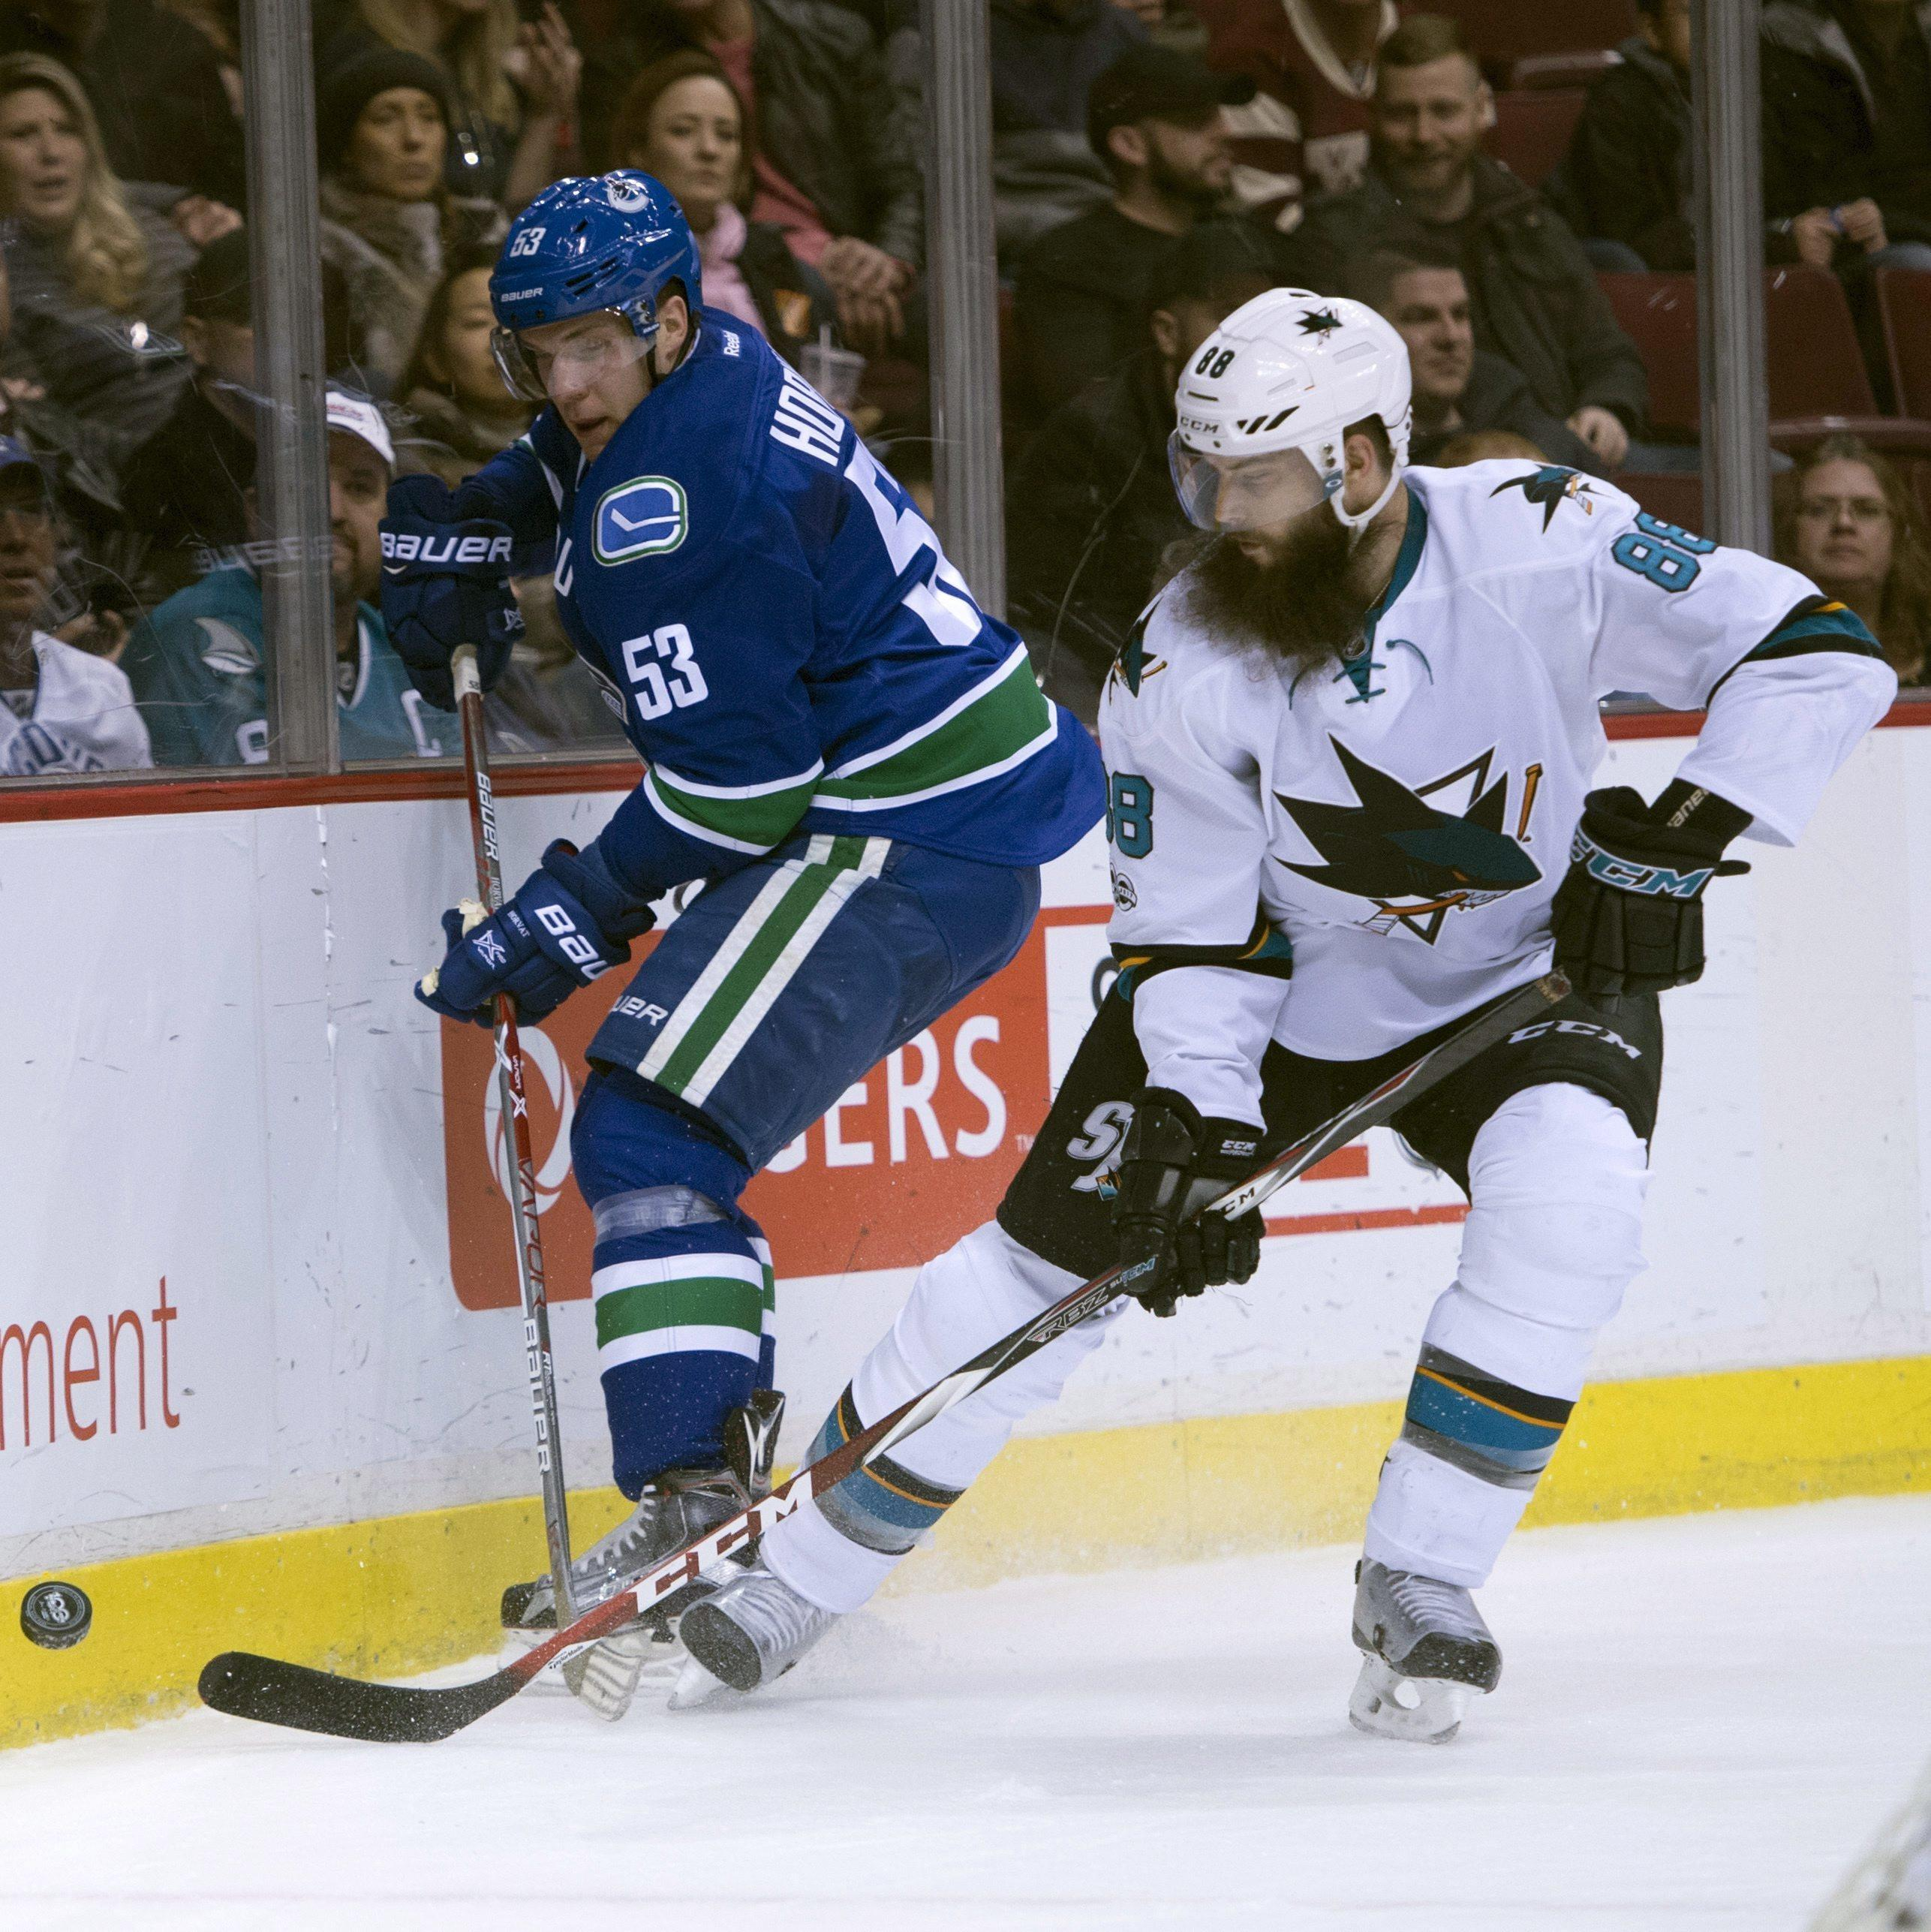 Sharks_canucks_hockey_97648